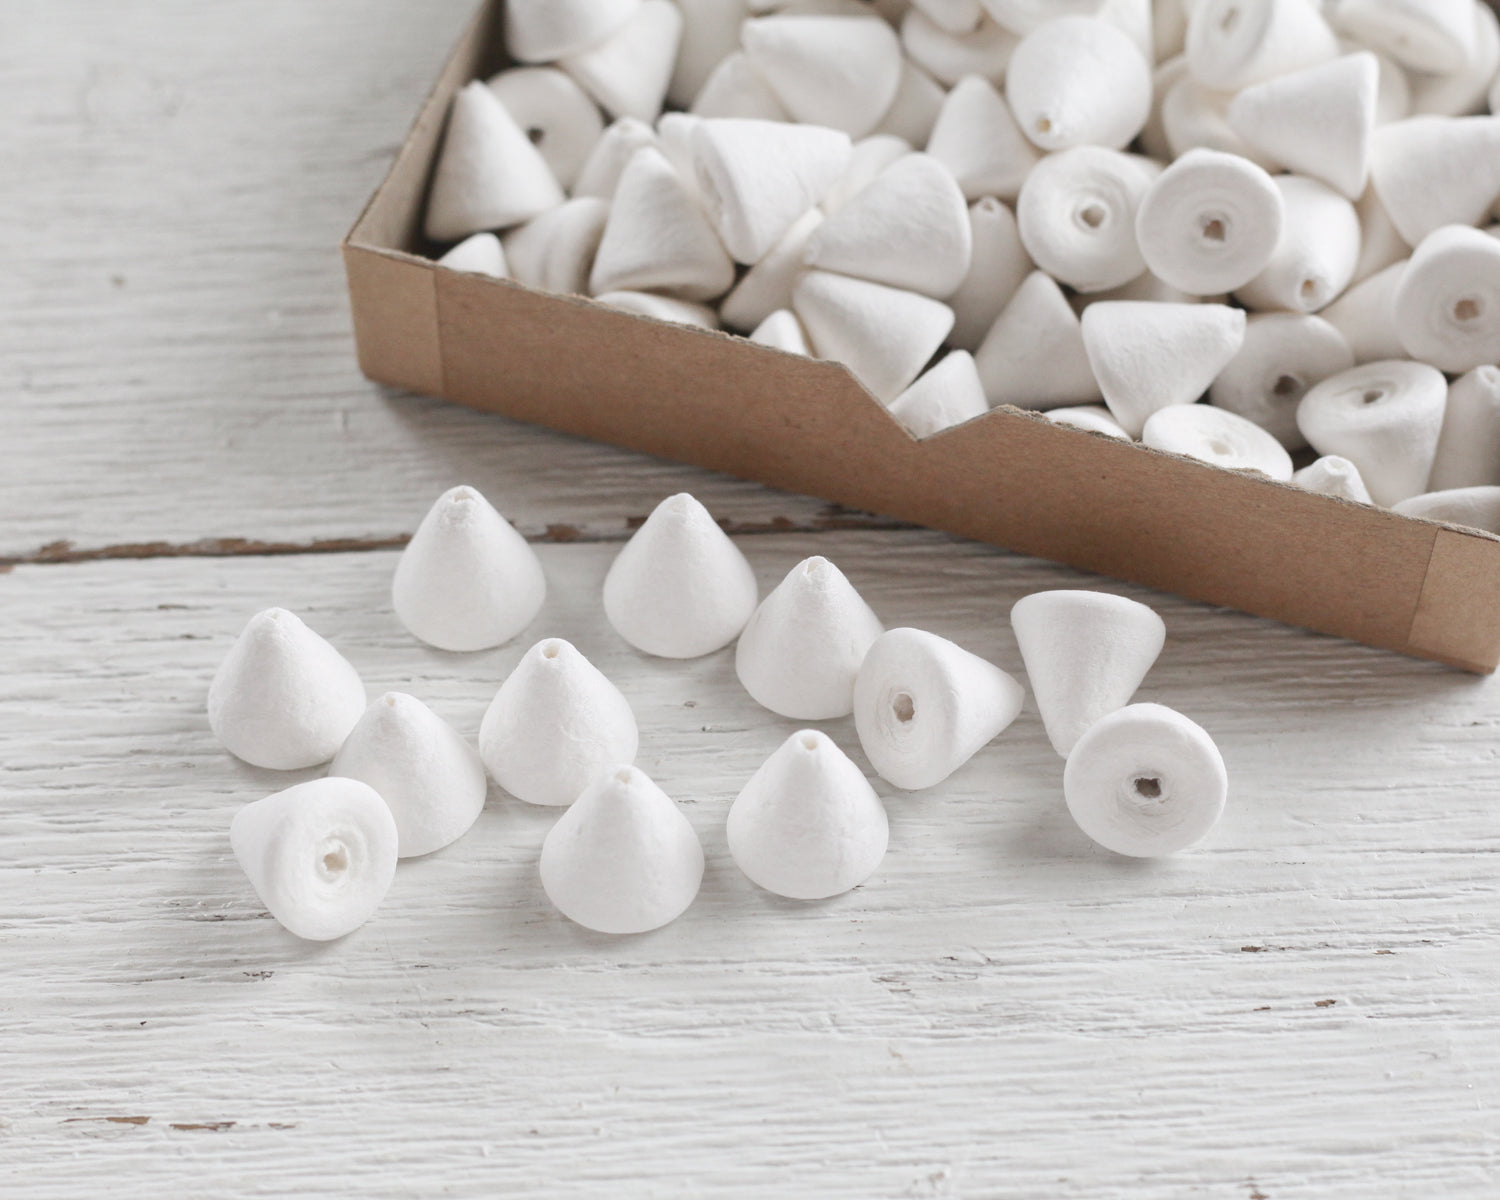 Small Spun Cotton Cones - 18mm Cone Craft Shapes, 12 Pcs ...